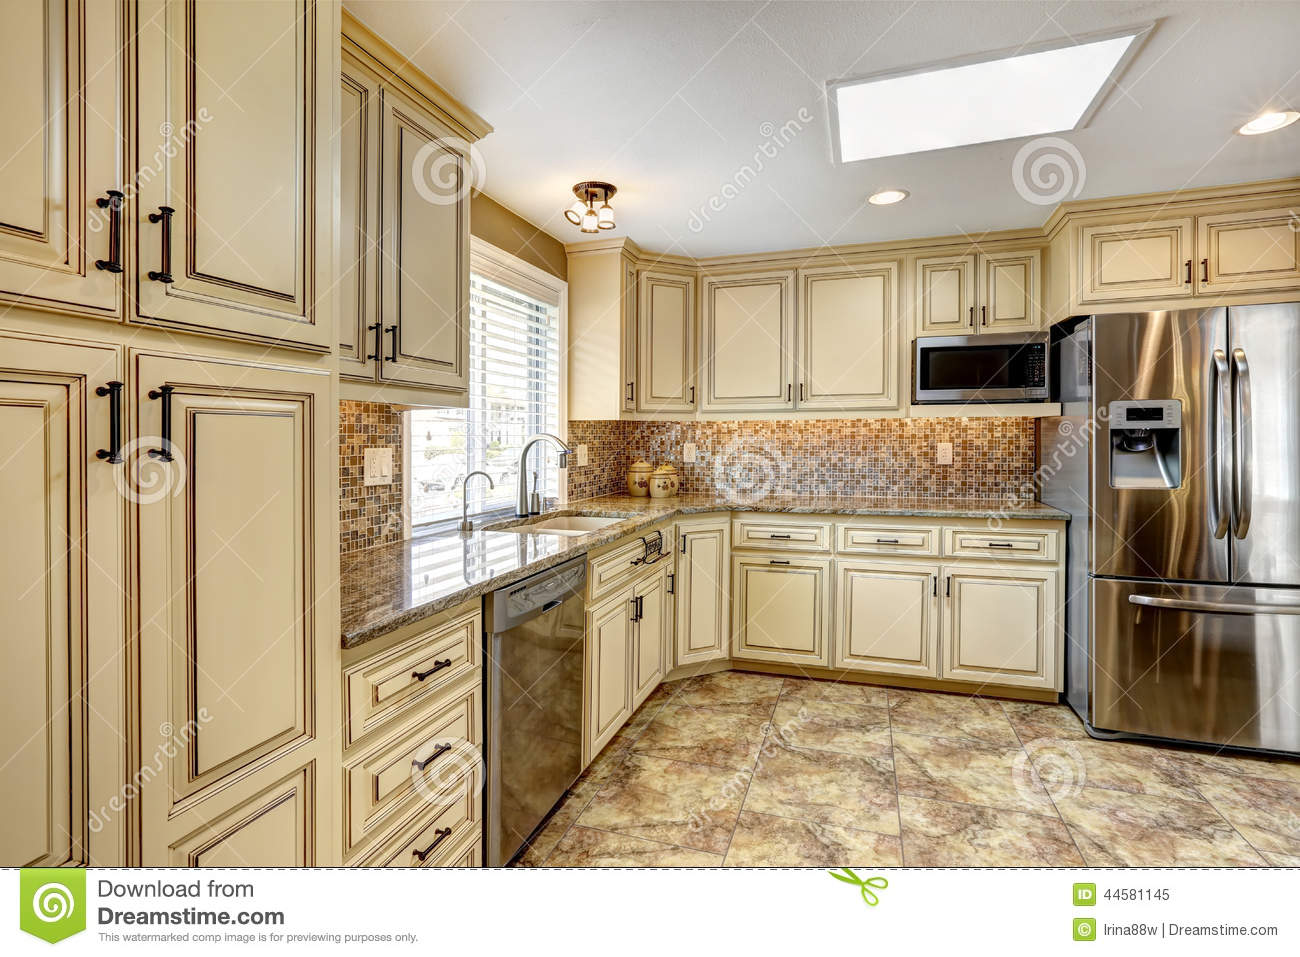 Luxury Kitchen Interior With Back Splash Trim And Tile